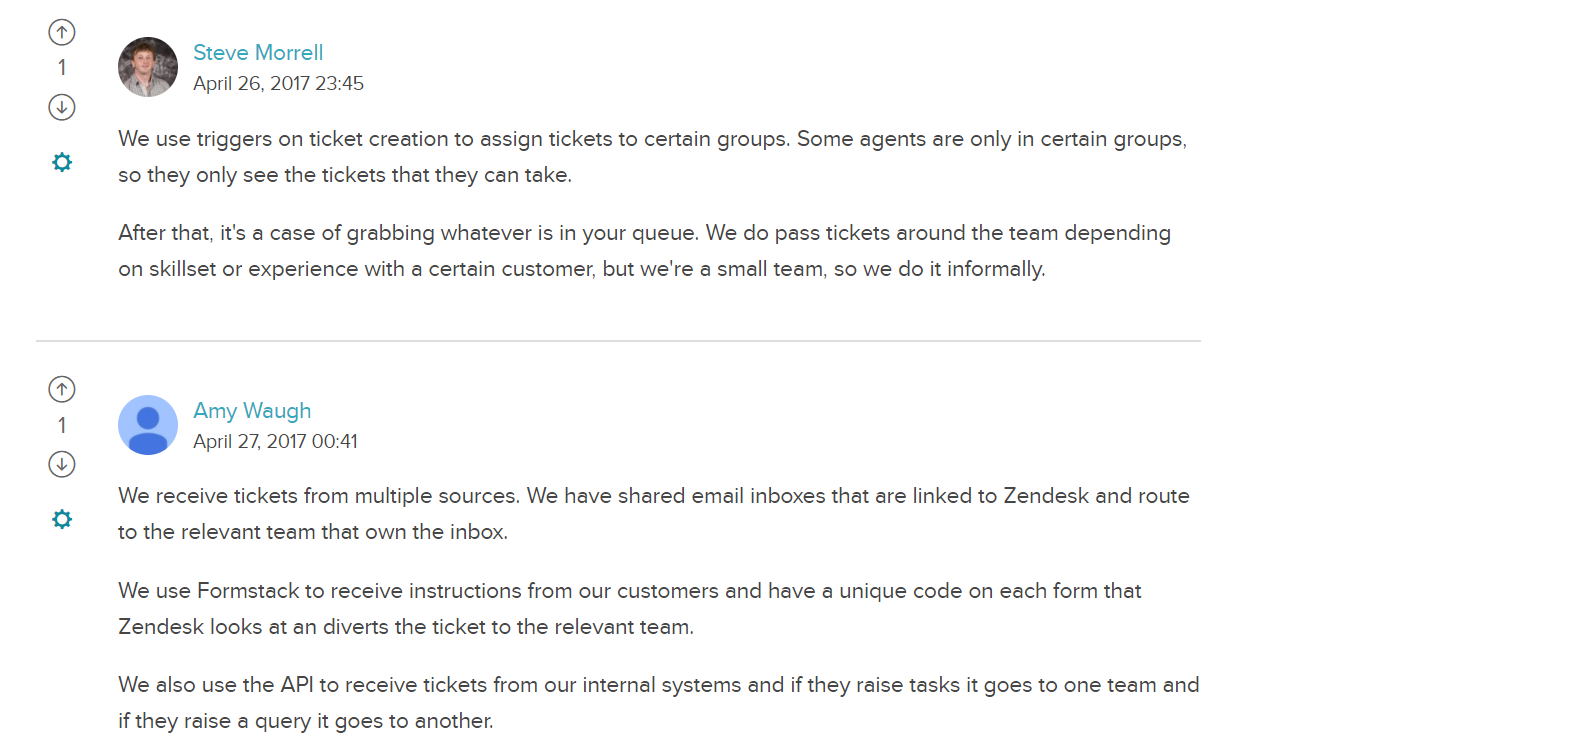 NPS promoters sharing knowledge on Zendesk forum